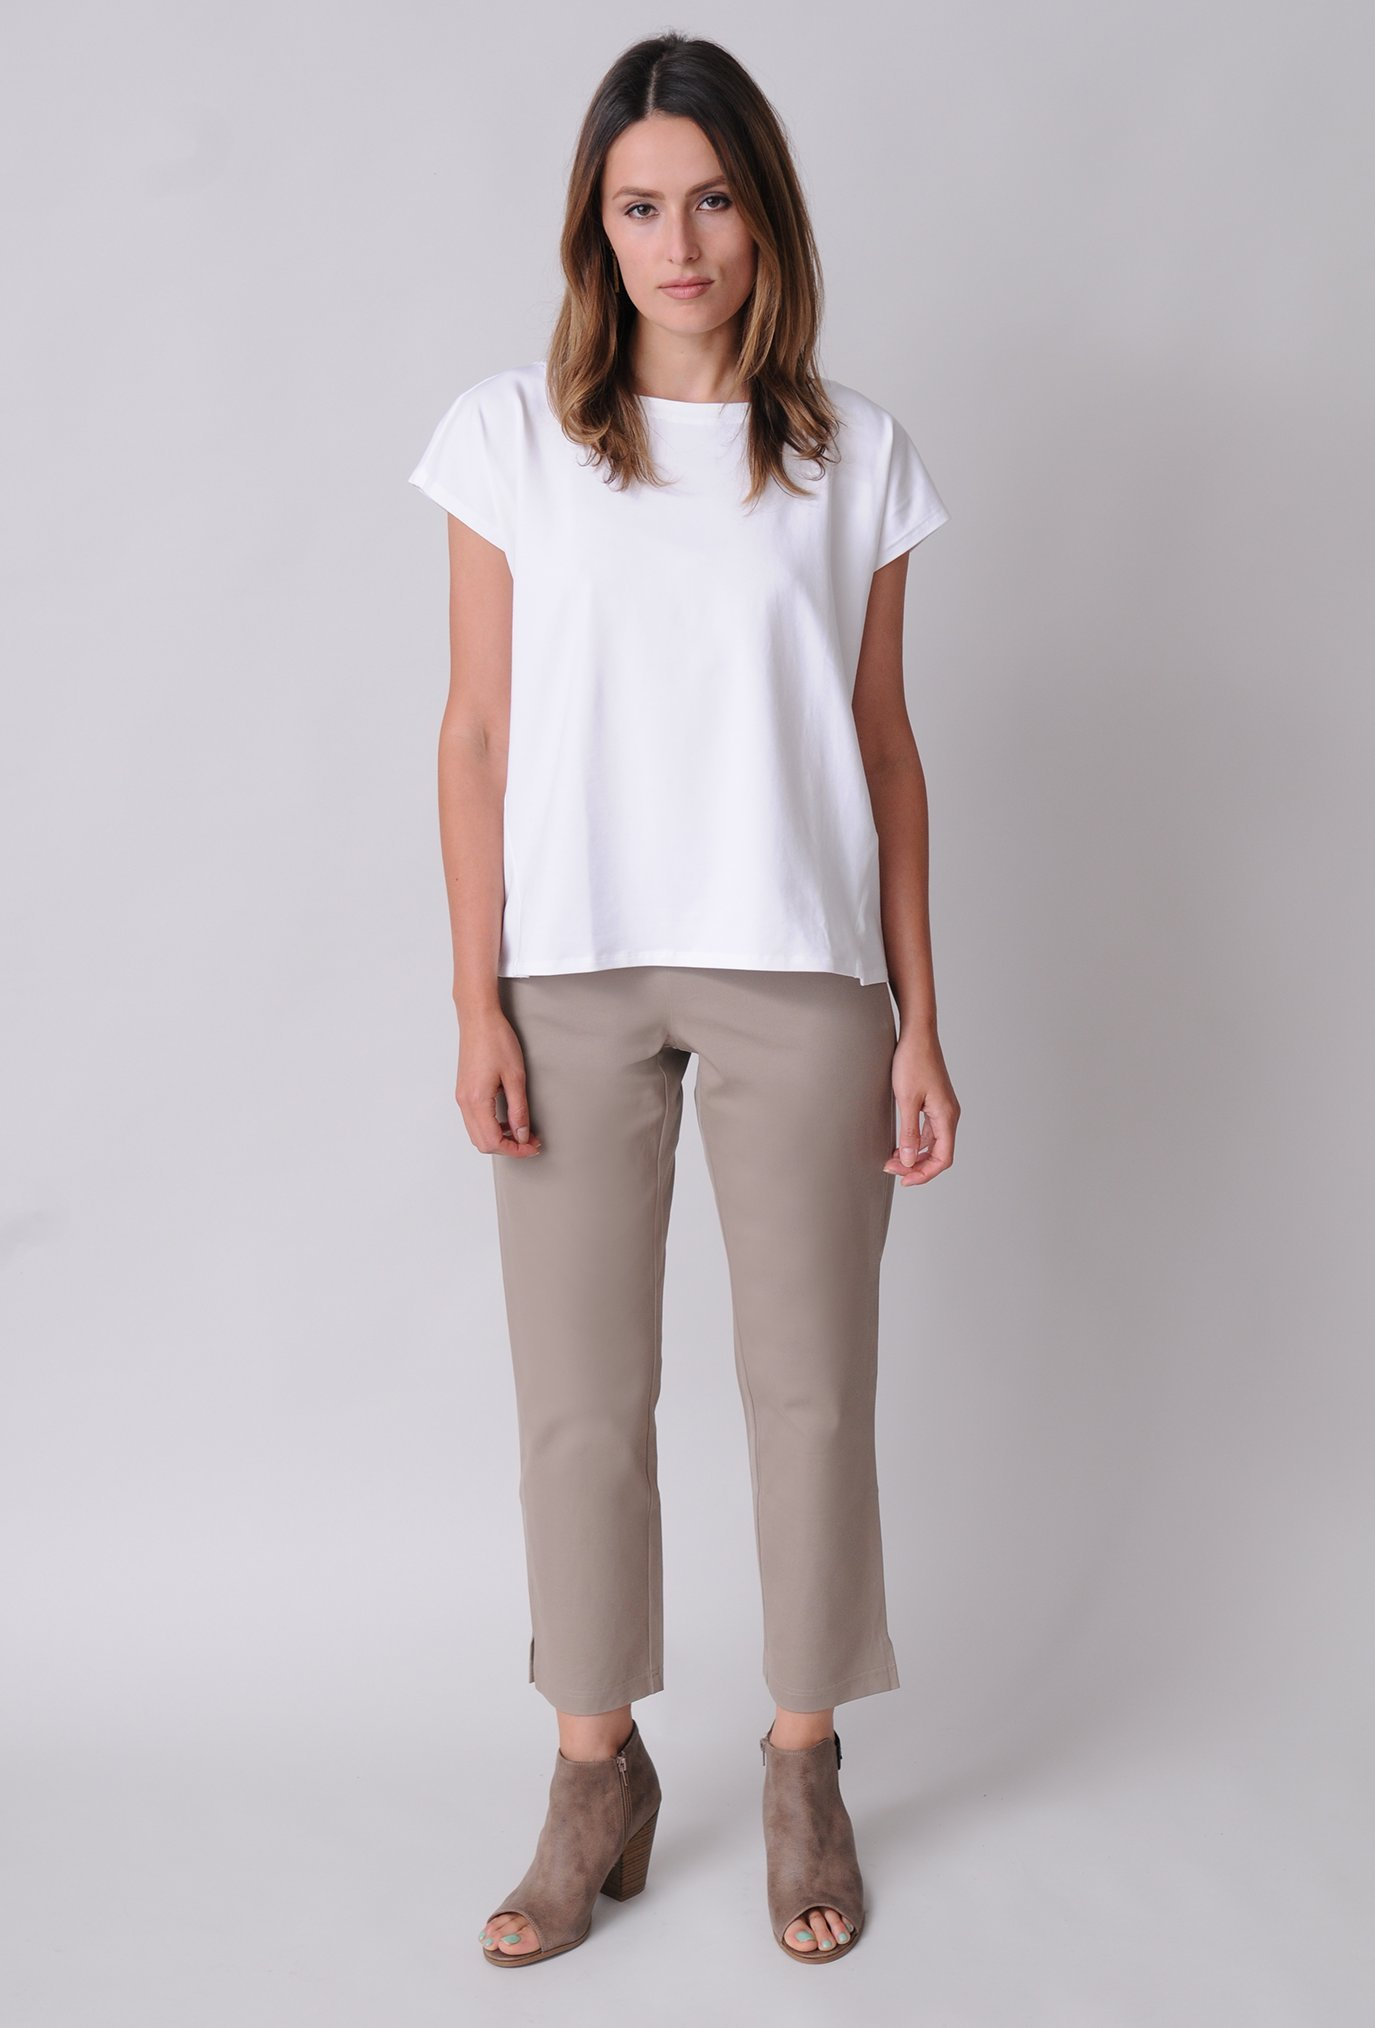 Eileen Fisher Organic Cotton Stretch Twill Slim Ankle Pant by Eileen Fisher (Image #1)